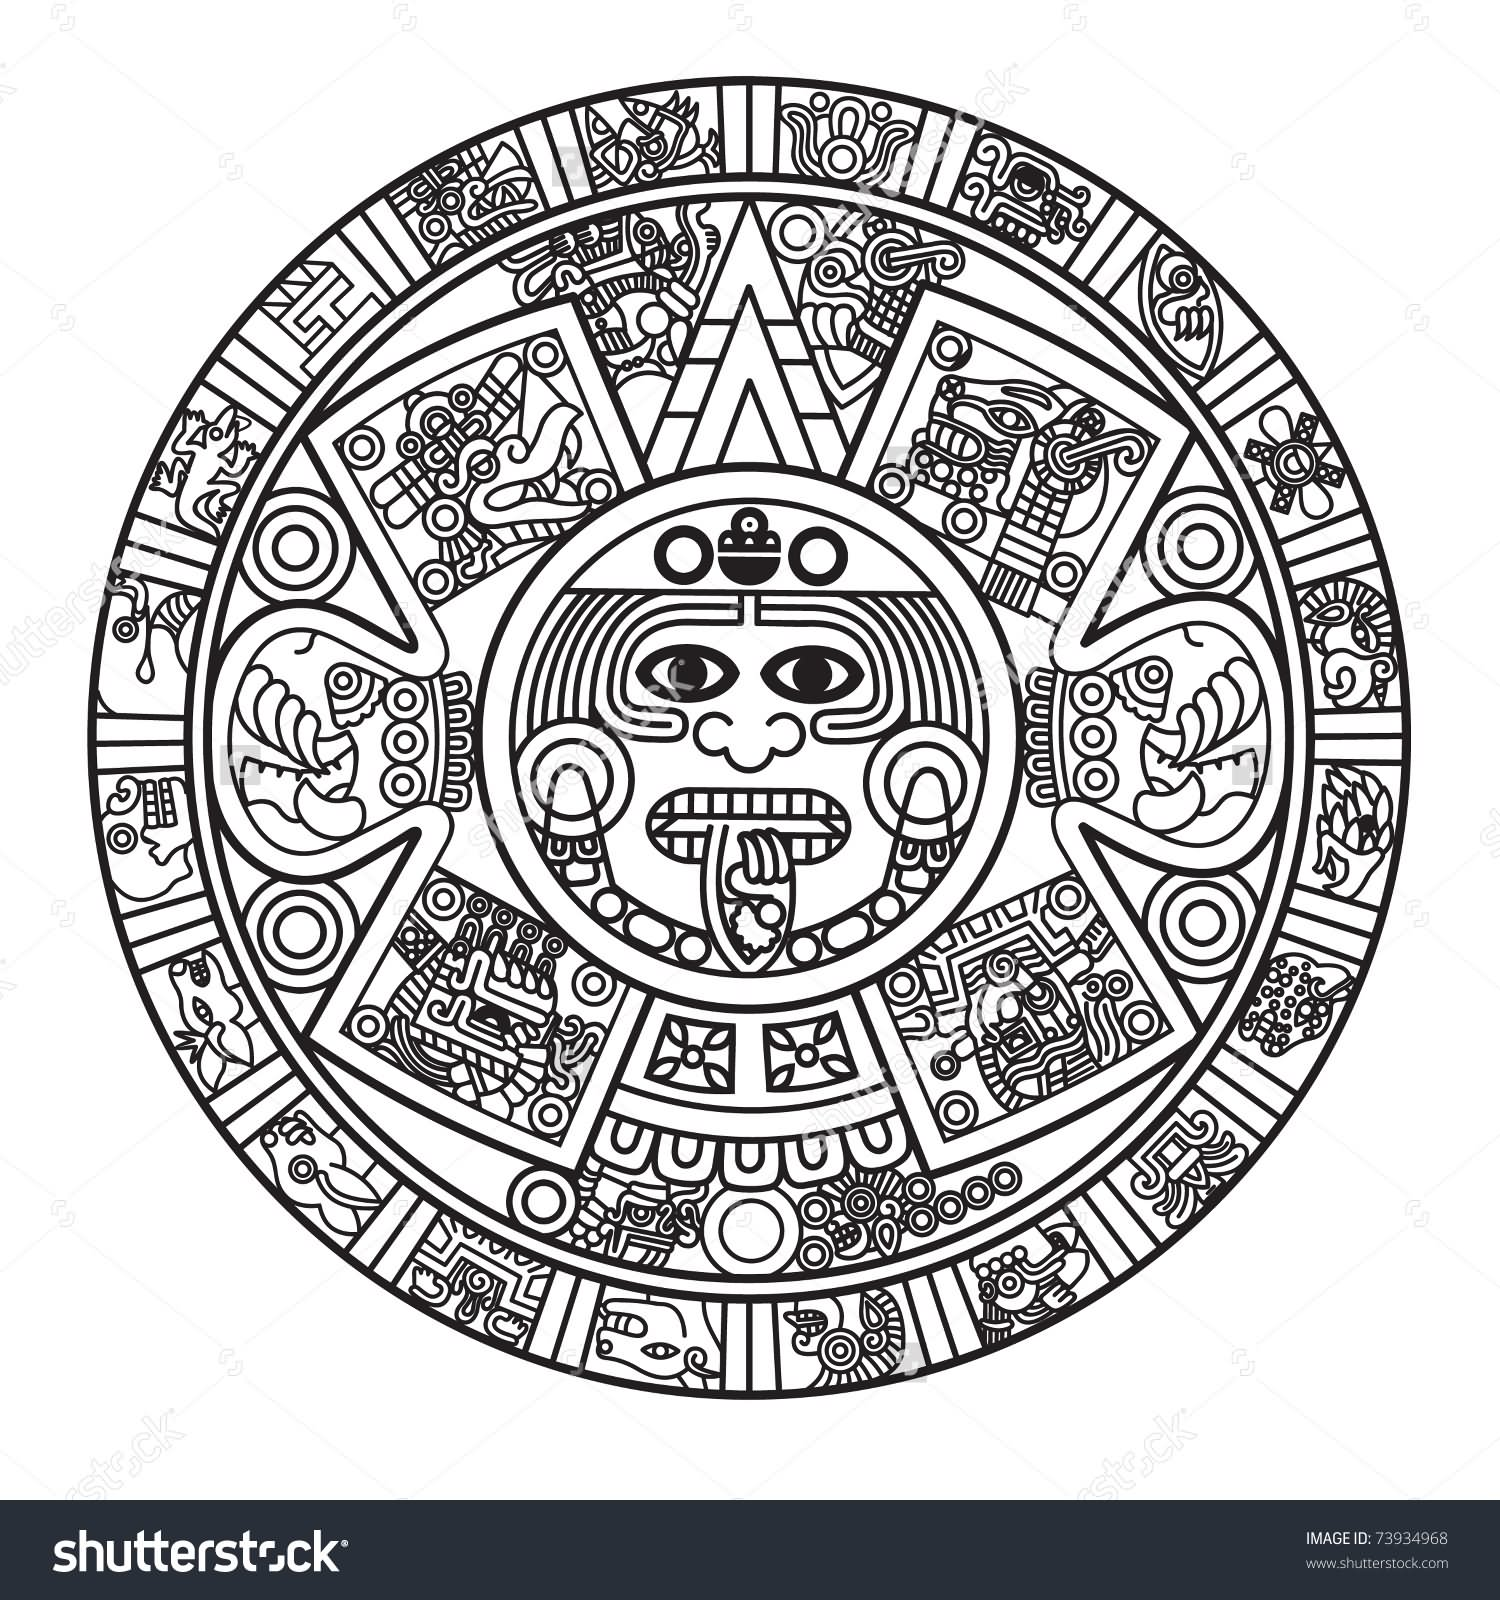 19 Unique Aztec Tattoo Designs And Ideas